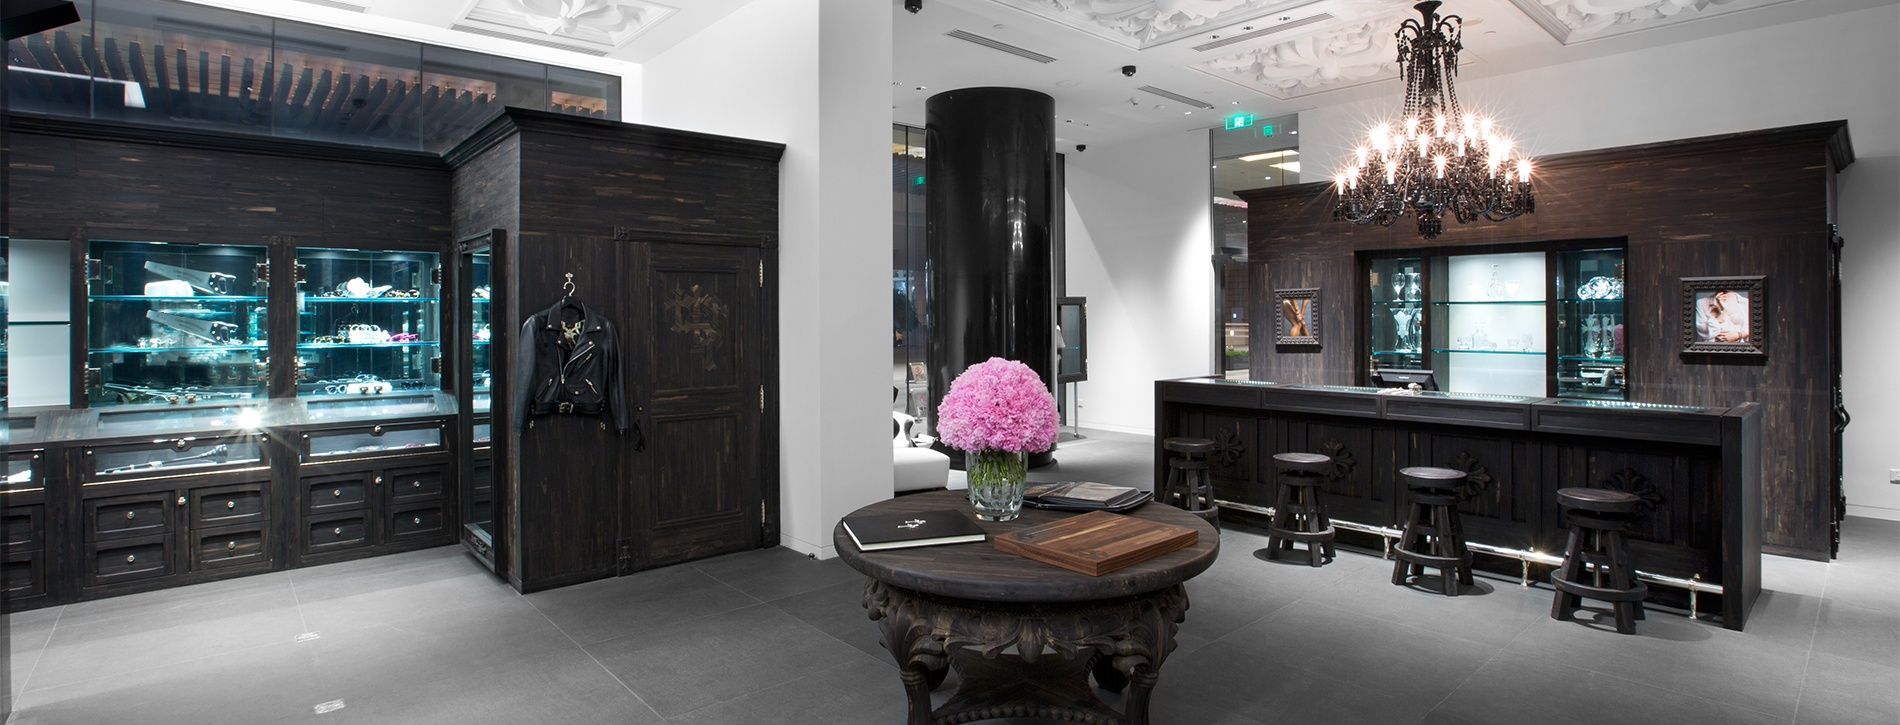 Chrome Hearts Beijing High End Retail   MW Steele Group Architecture and Planning